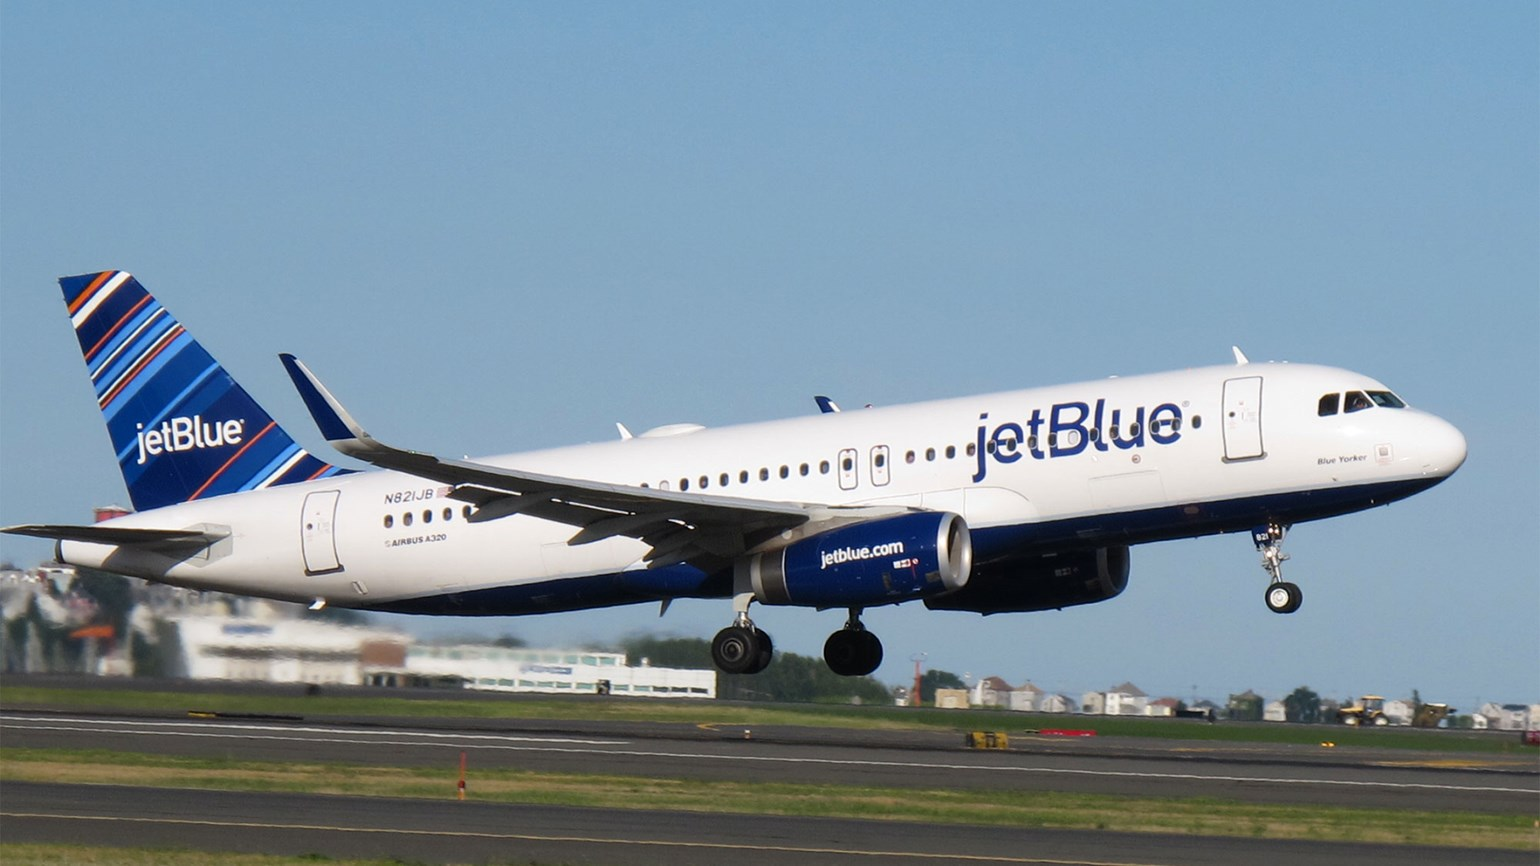 JetBlue pulling out of several small OTAs